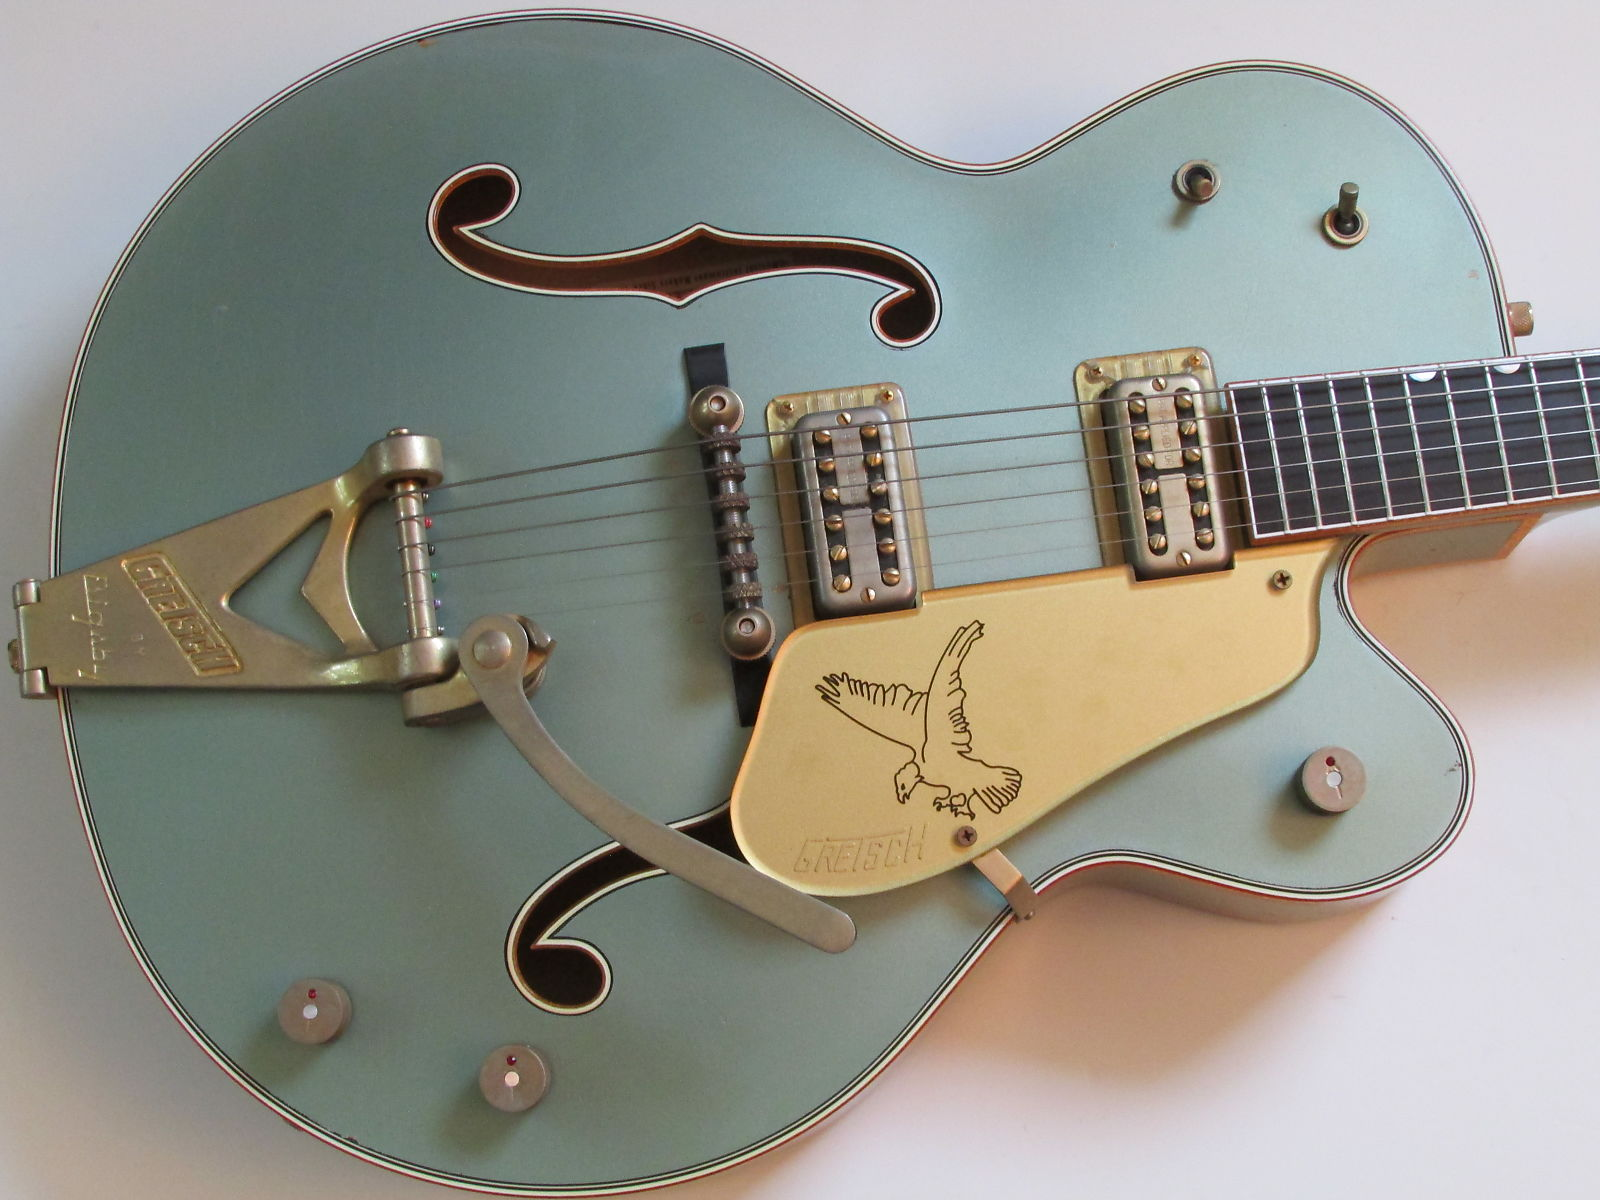 Made in: Korea or Japan - Big Difference? : Modern Gretsch Guitars